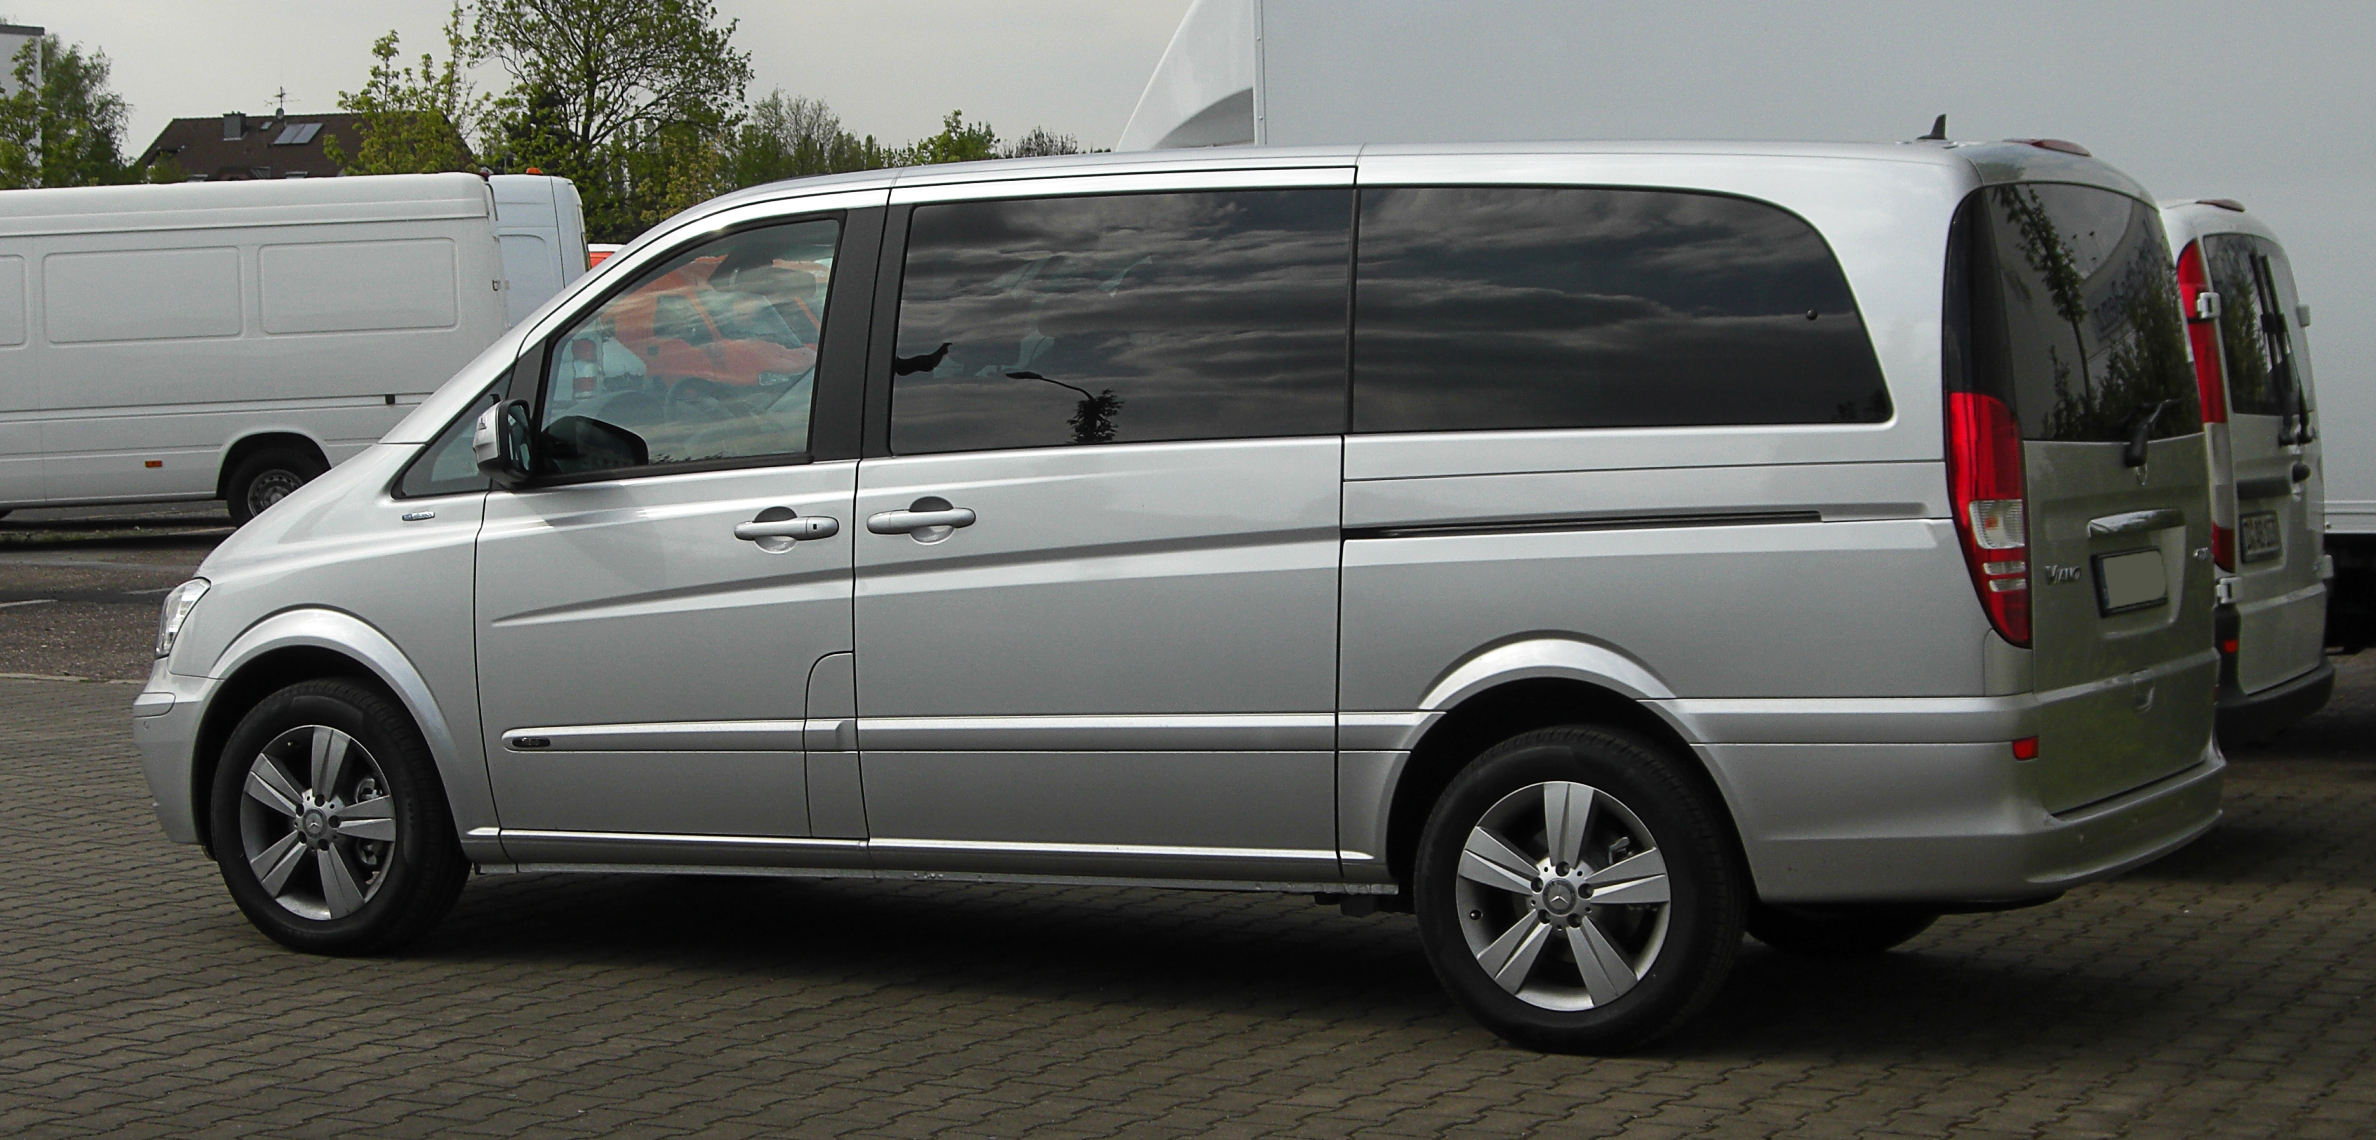 Mercedes-Benz Viano #26